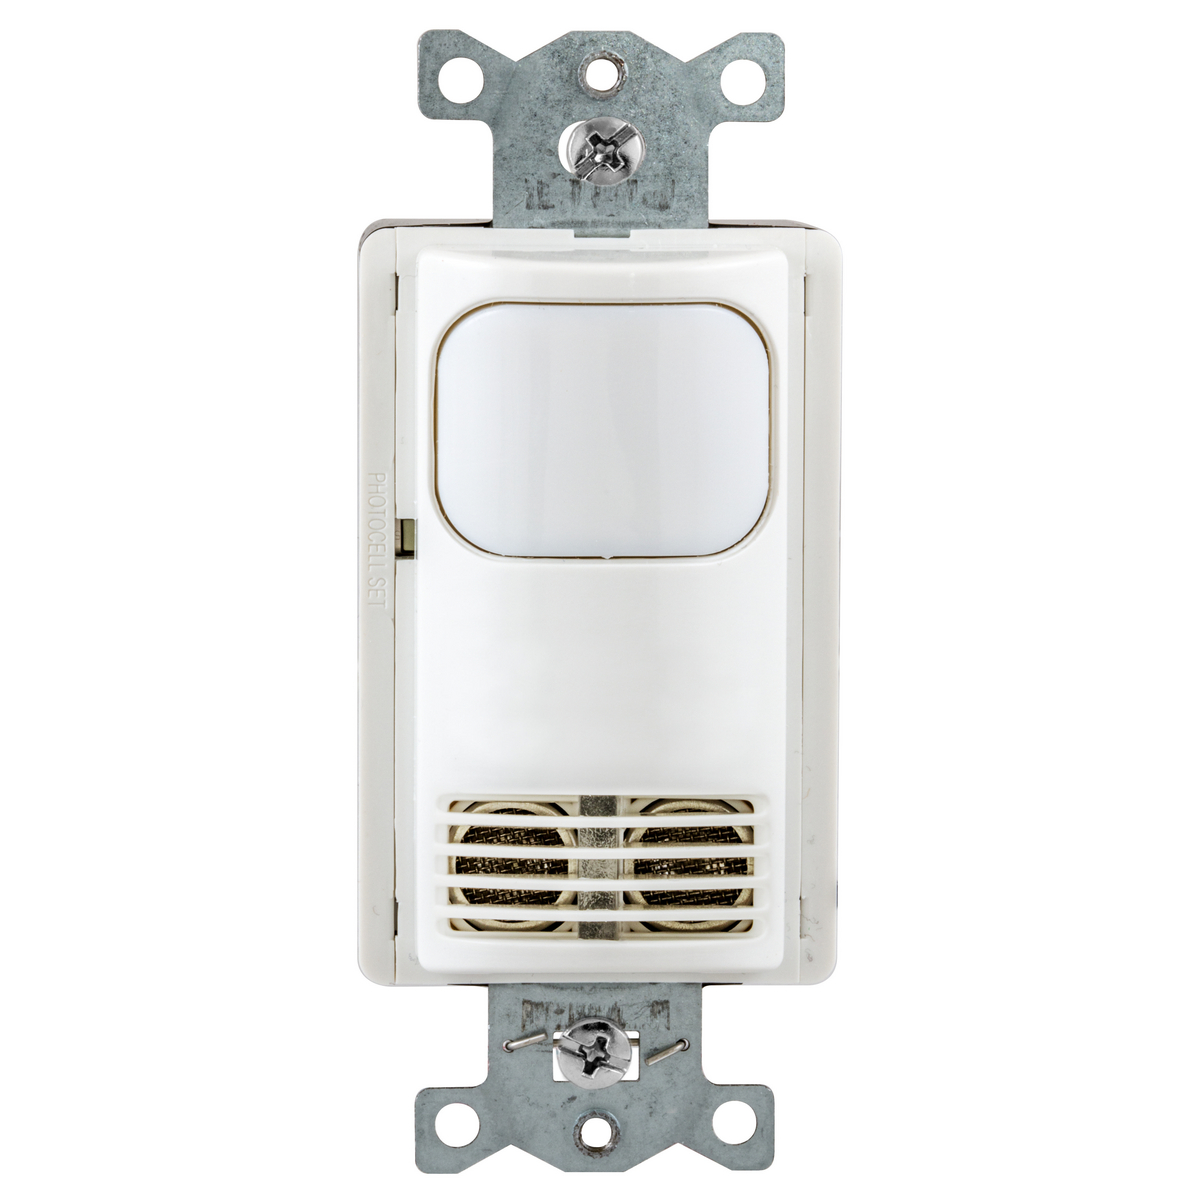 Switches United Electric Cooper Wiring Quiet Toggle Switch Single Pole Lighted 15 A 120 V Ivory Hubbell Ad2000w1n Device Kellems Occupancy Sensing Products Wall Switchoccupancy Or